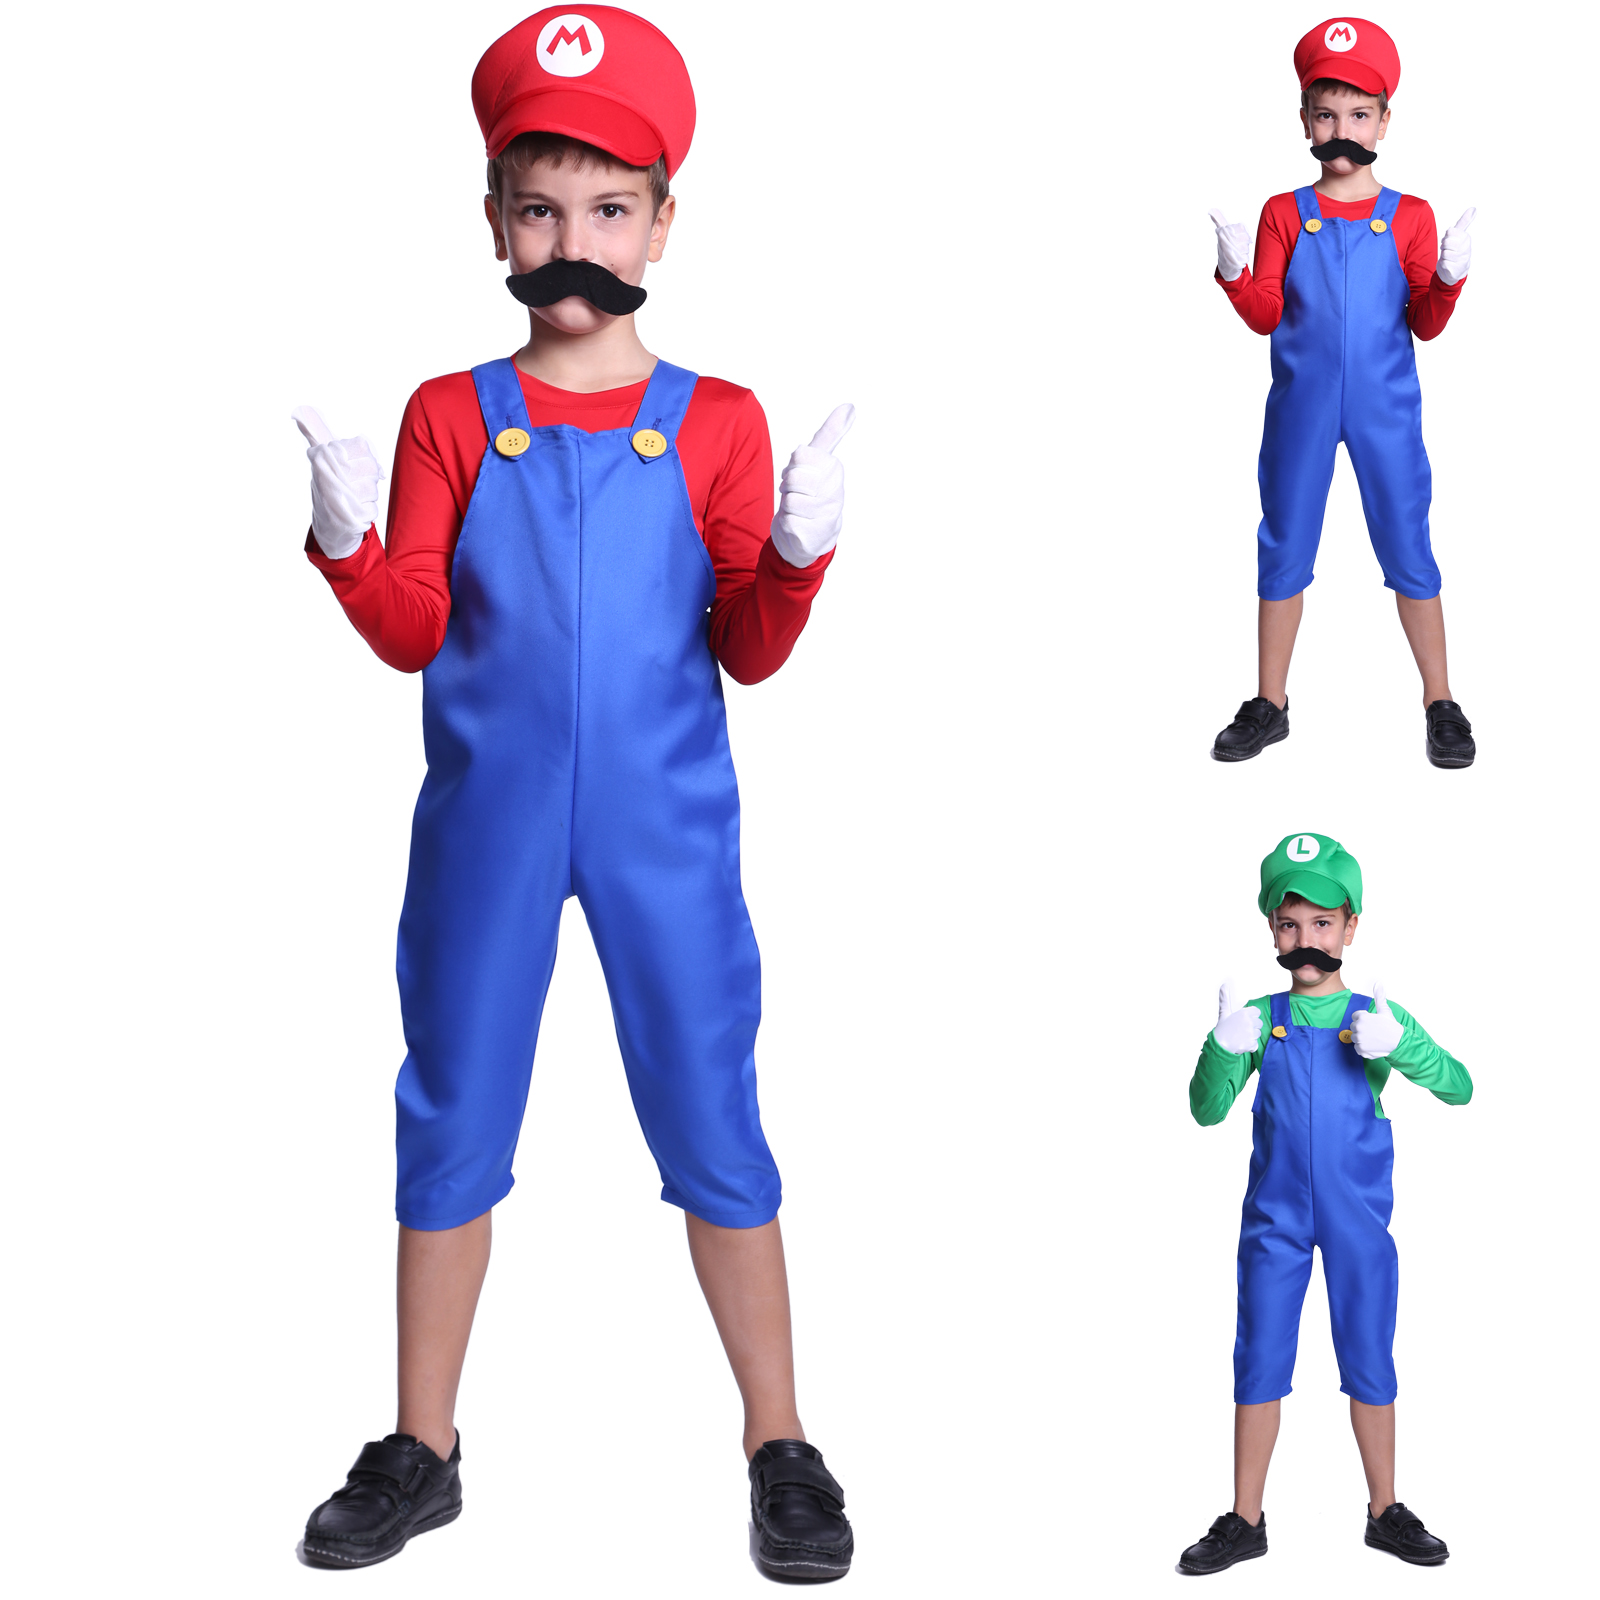 super mario luigi bro klempner kost m kinder jungen weihnachten party fasching ebay. Black Bedroom Furniture Sets. Home Design Ideas